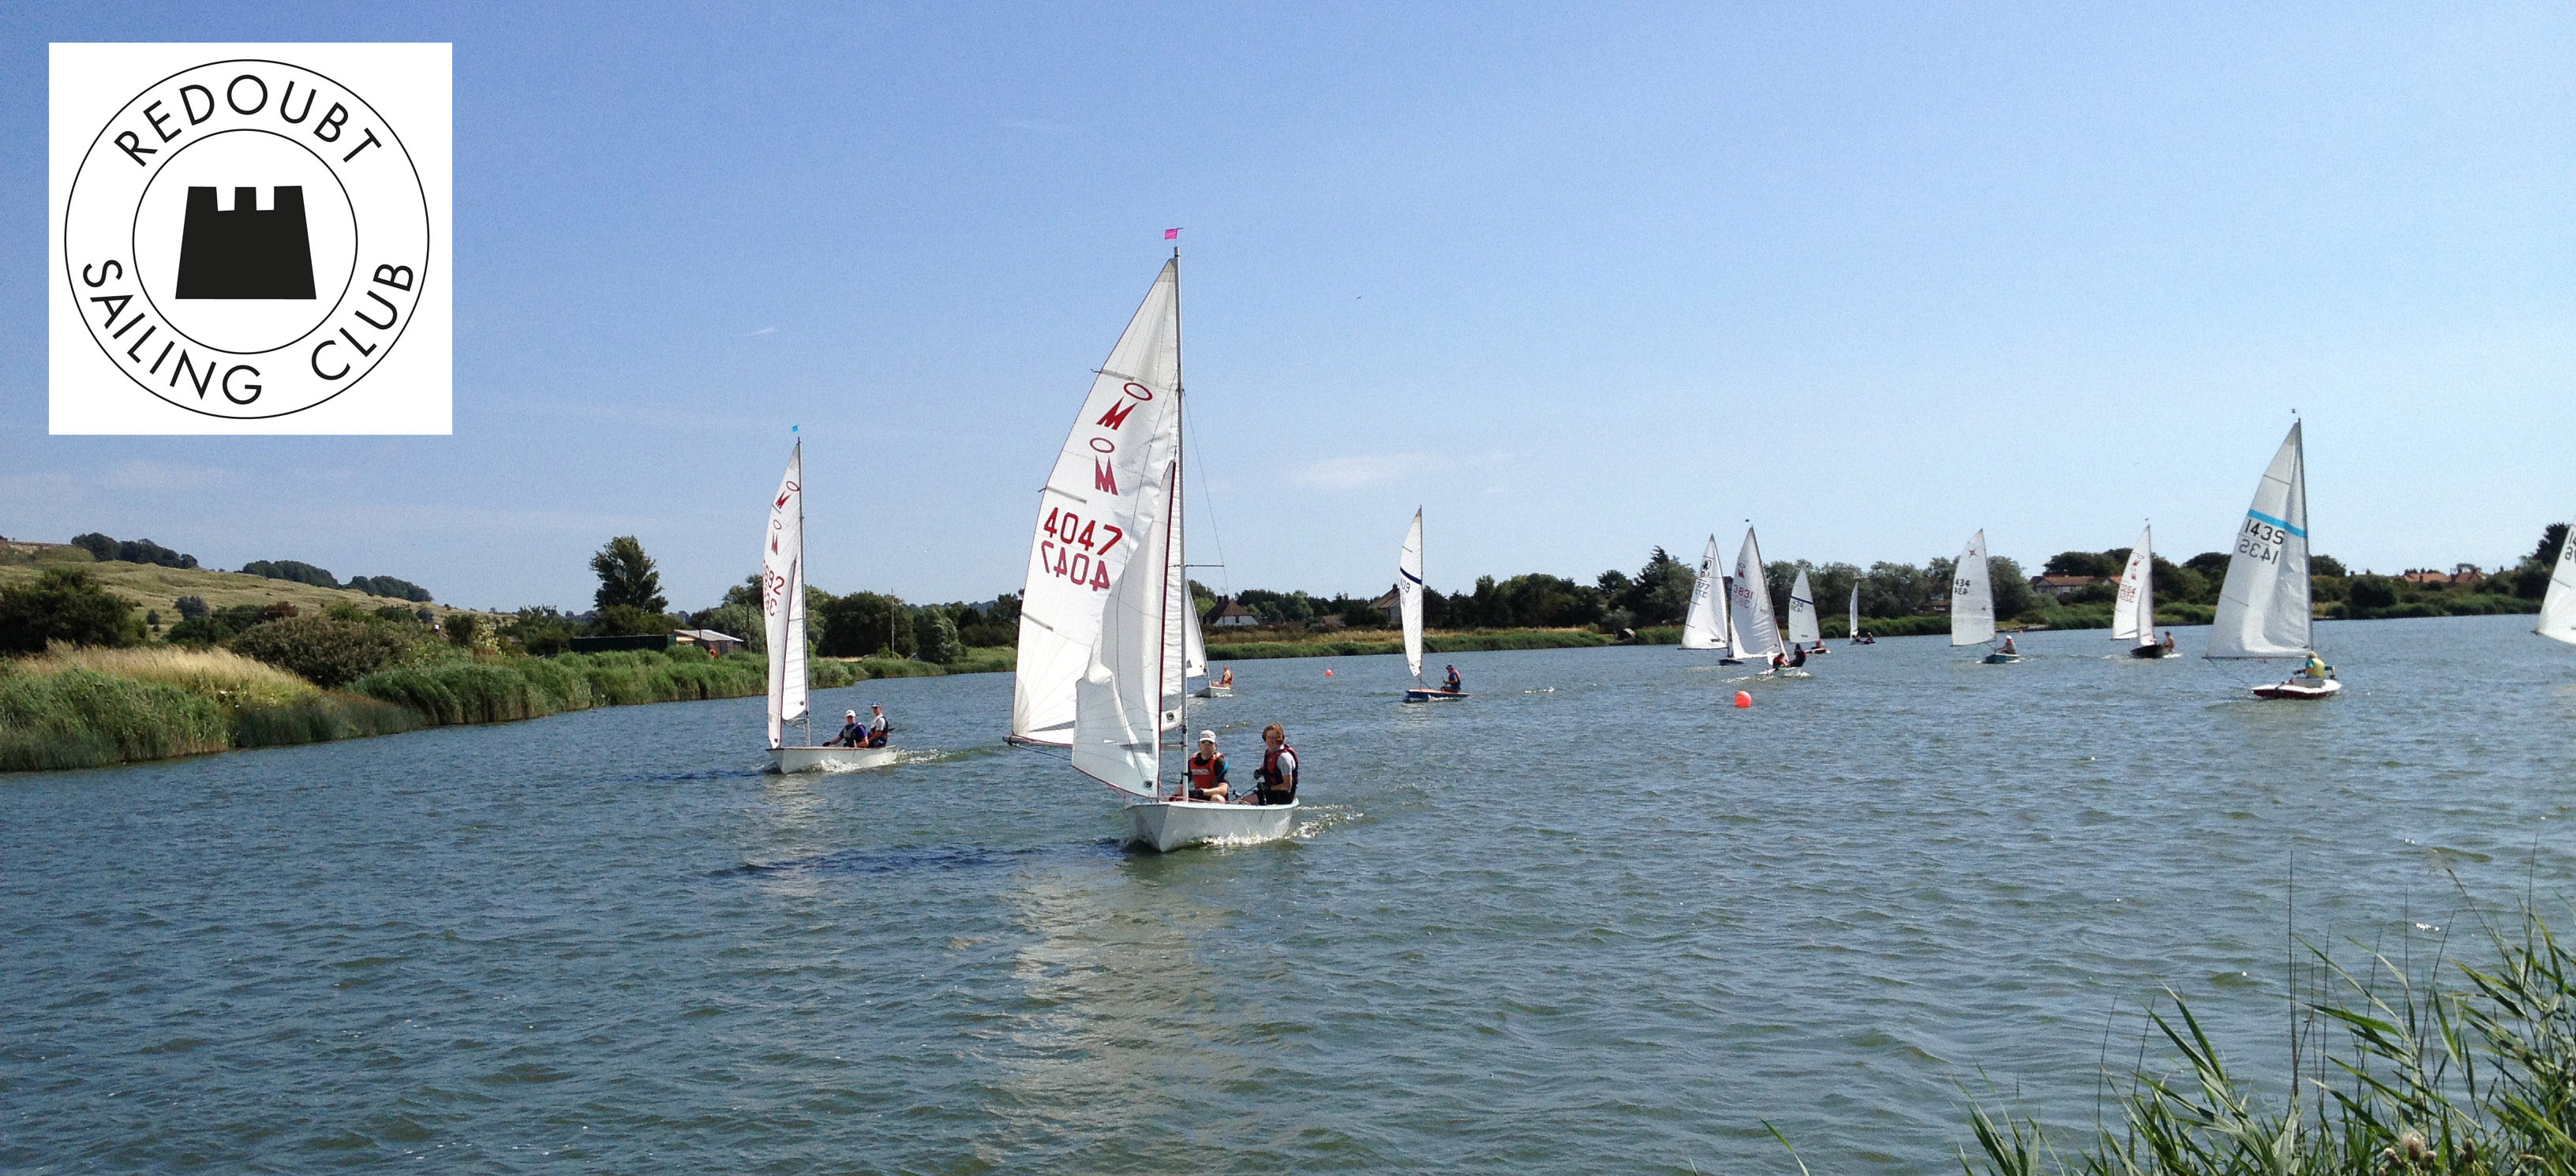 Redoubt Sailing Club